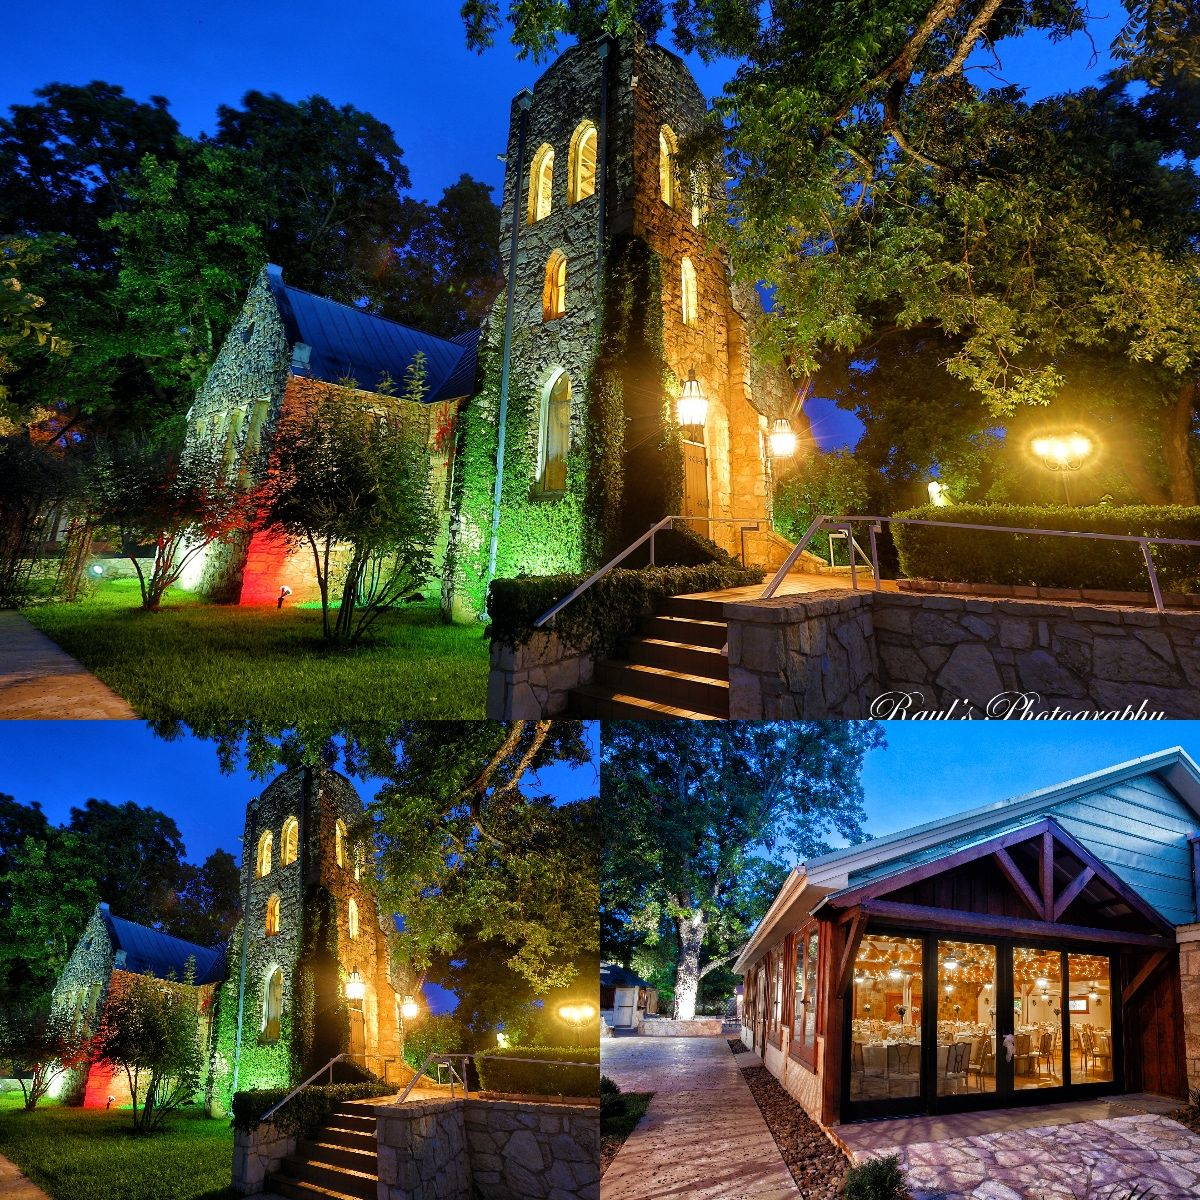 Spinelli's Wedding Venue in 2020 Hill country wedding